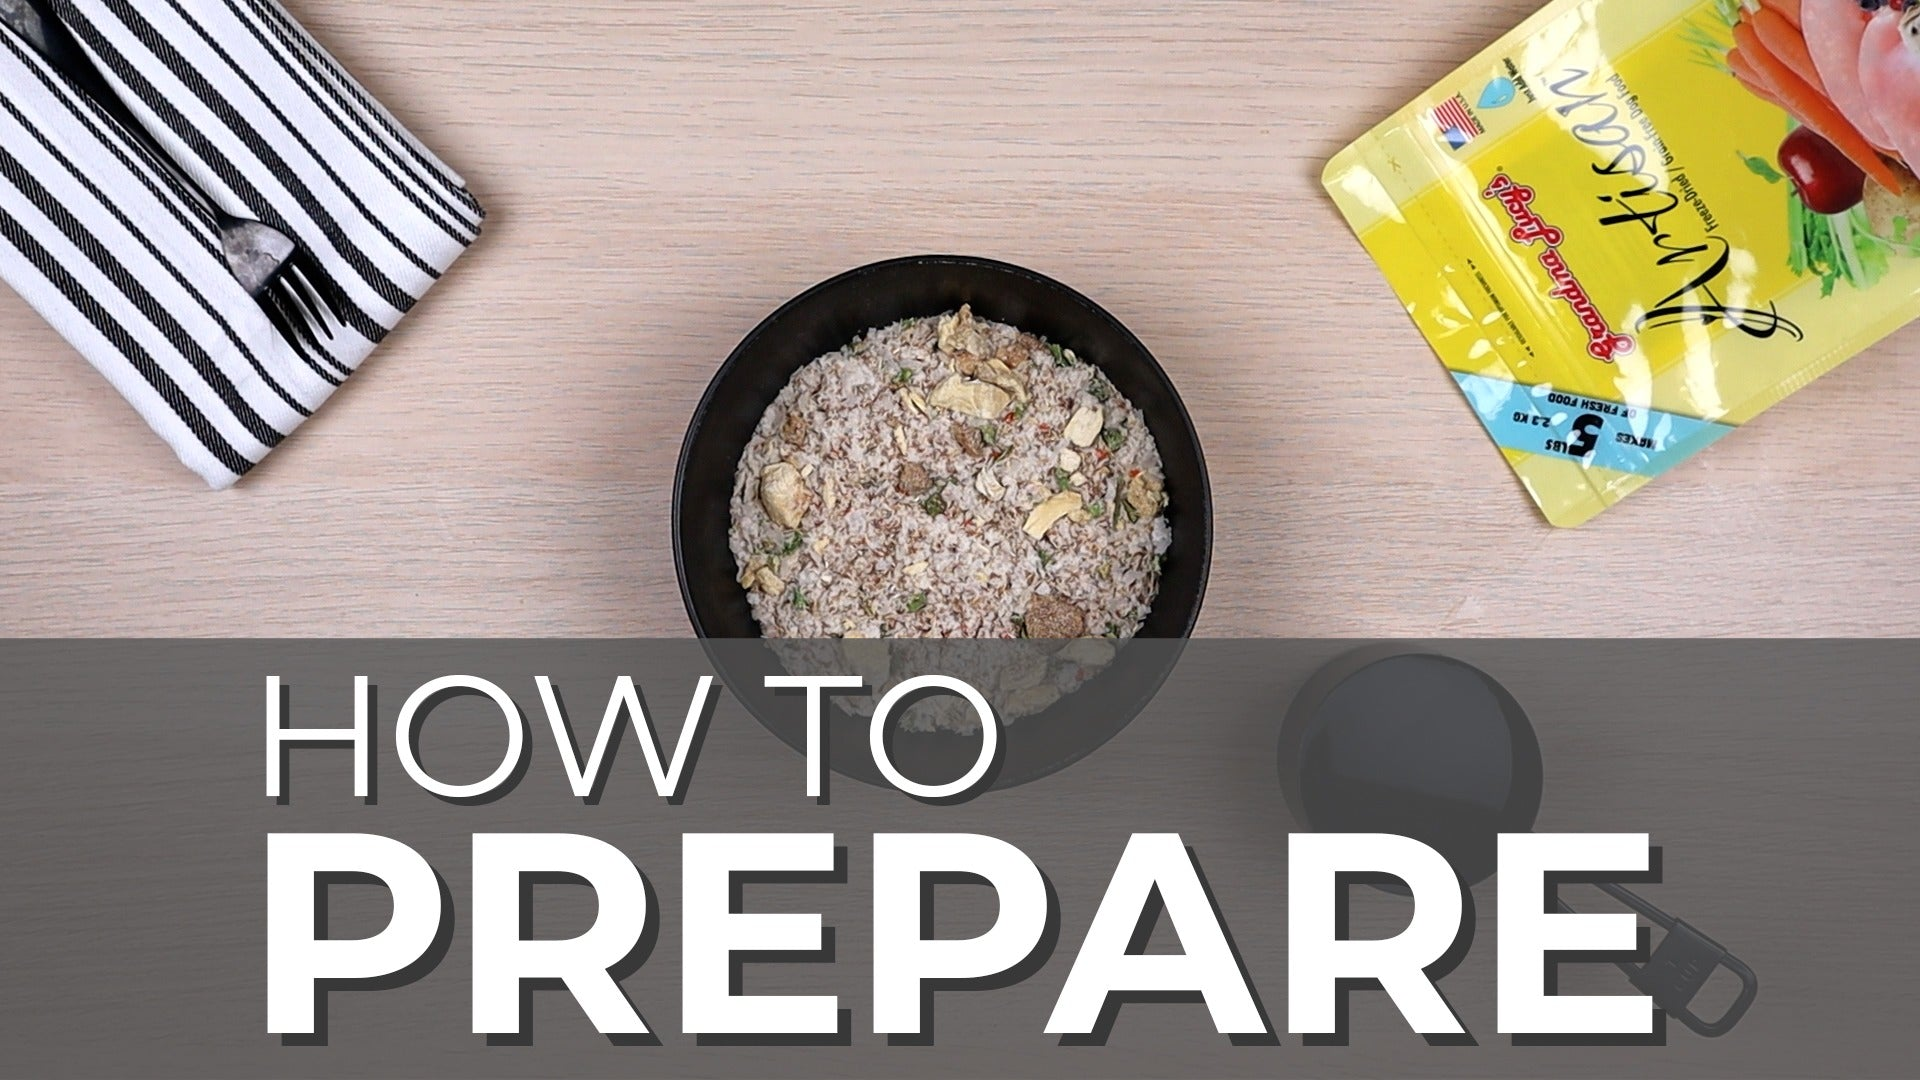 How to prepare video